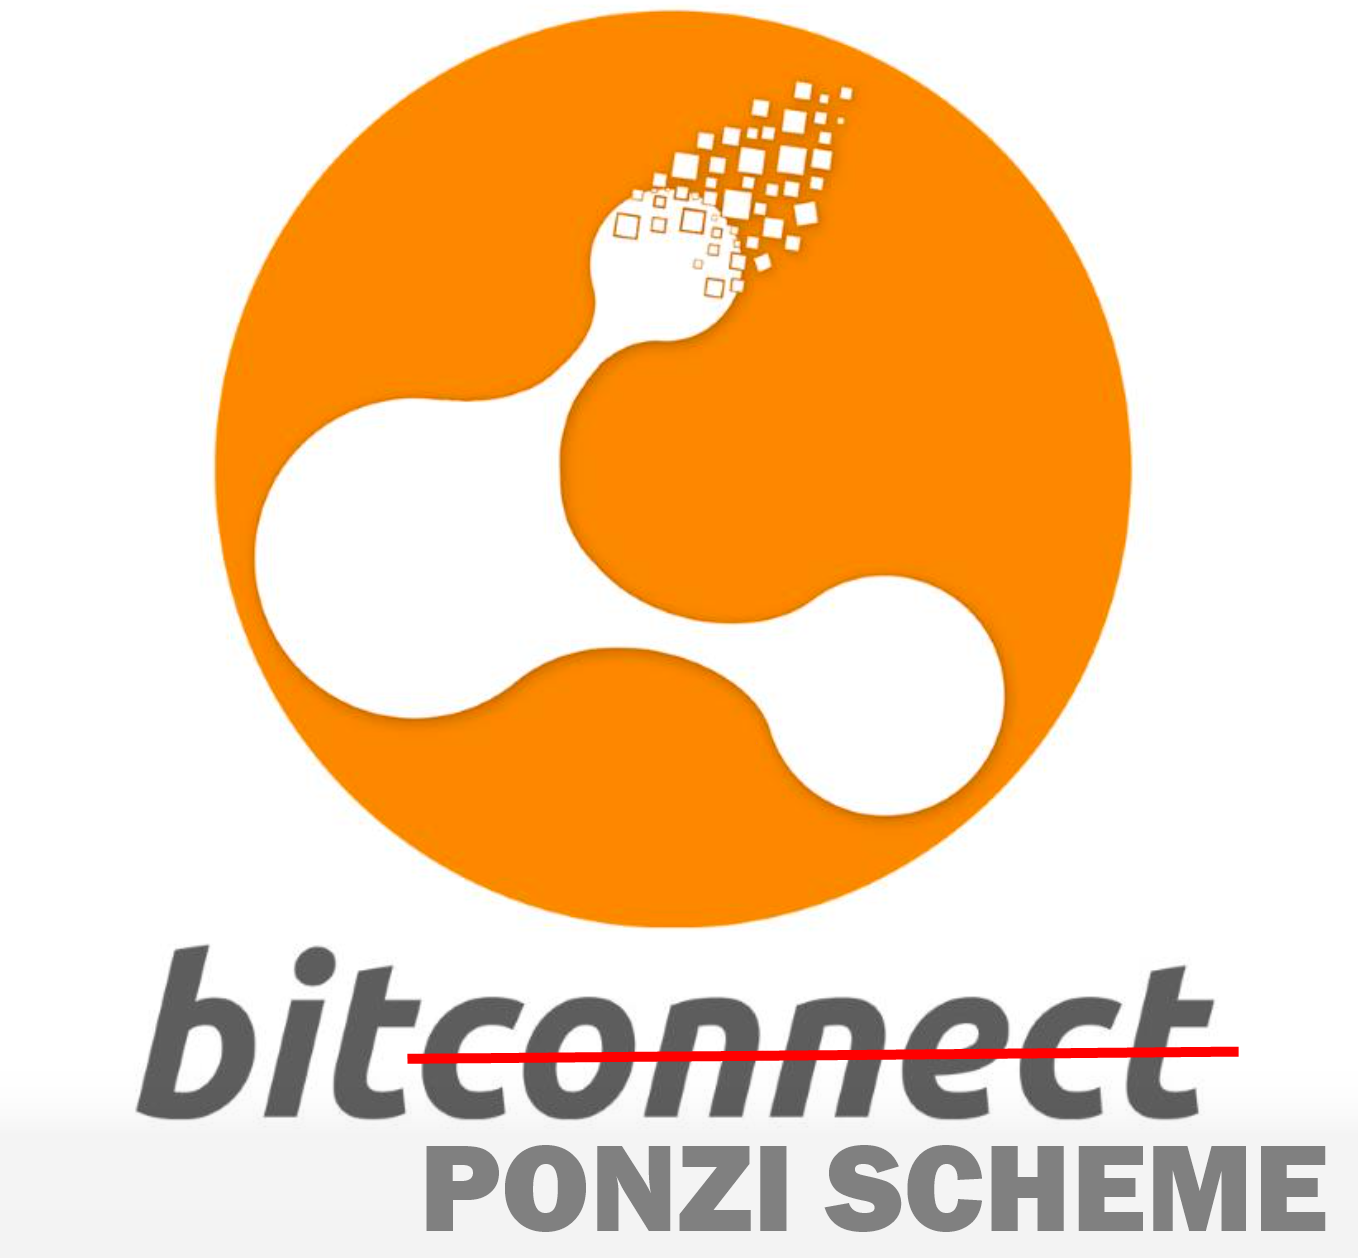 Bitconnect decides to shut down its crytpo exchange under regulatory one of the most controversial cryptocurrency exchange bitconnect has announced that it will close down its lending and exchange platform stopboris Choice Image